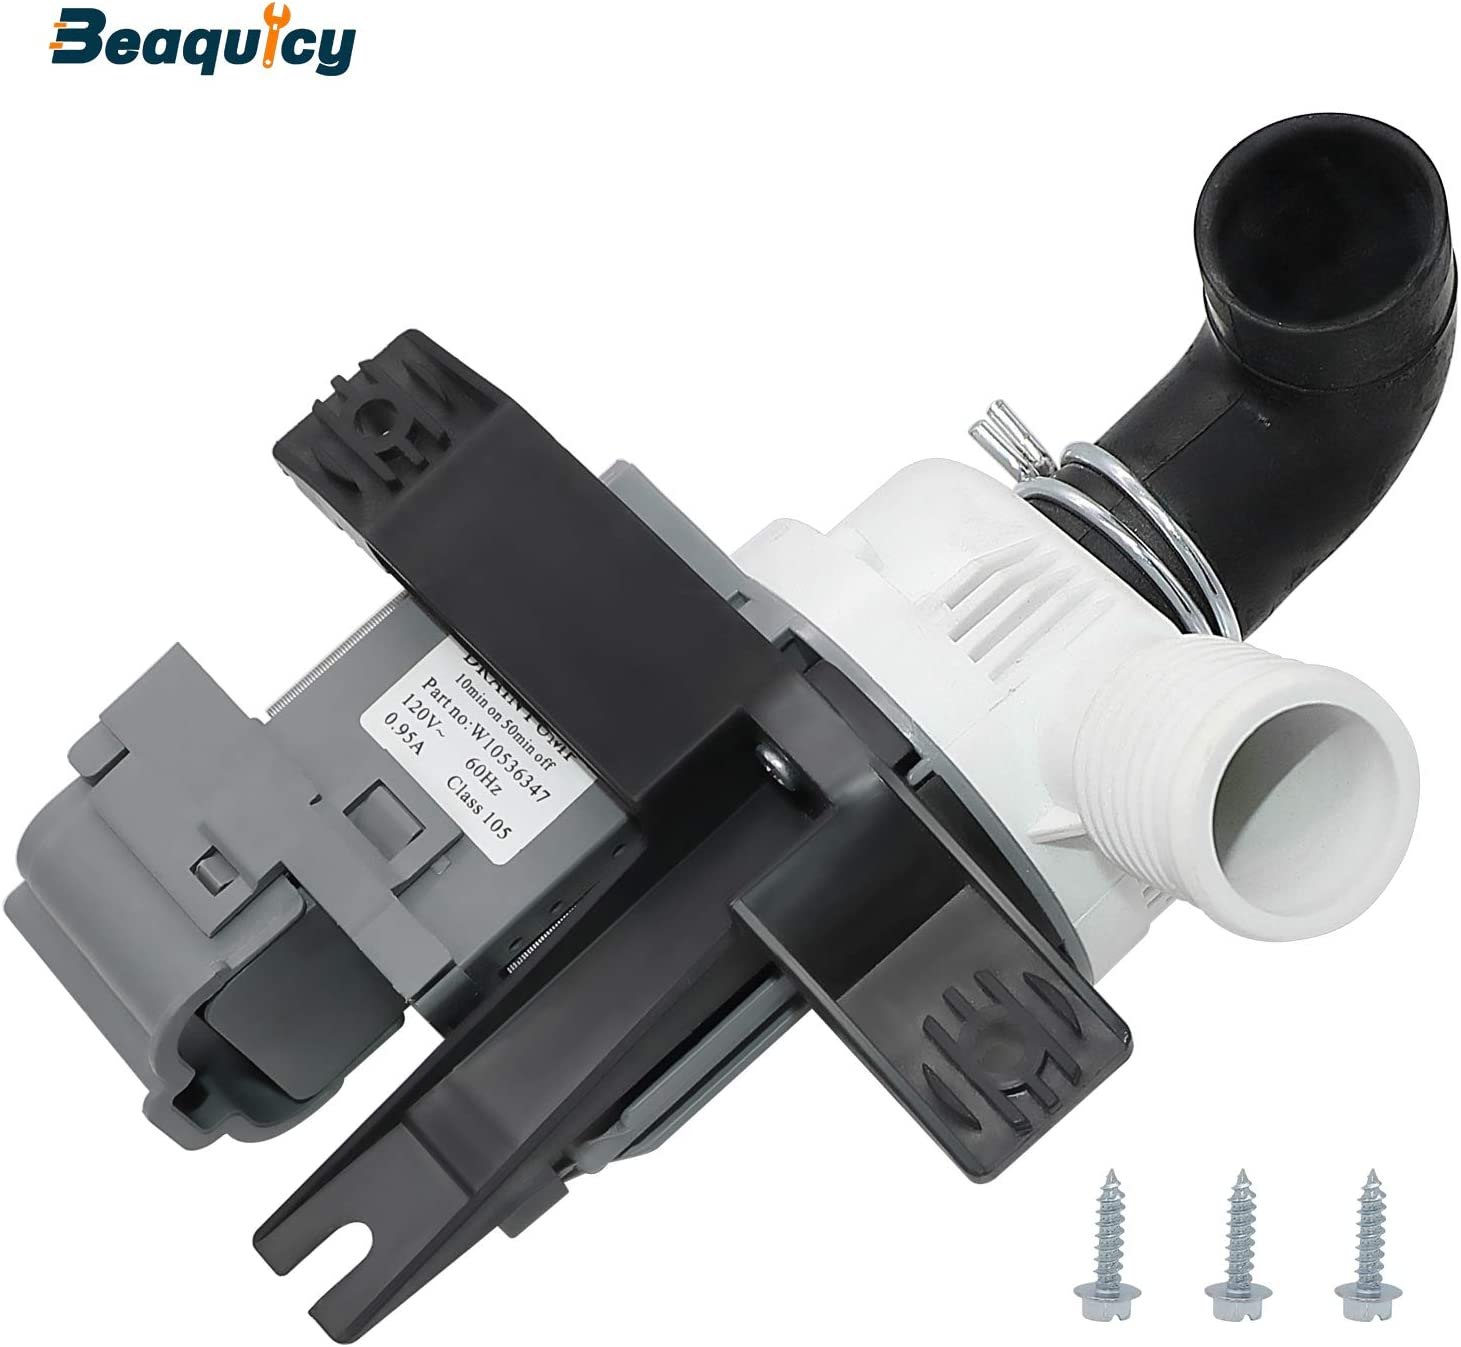 W10536347 Washer Drain Pump Assembly (120V 60Hz 0.95A) by Beaquicy - Replacement for Whirlpool Kenmore Washing Machine - Package Includes the Motor and 3 Pack Mounting Screws